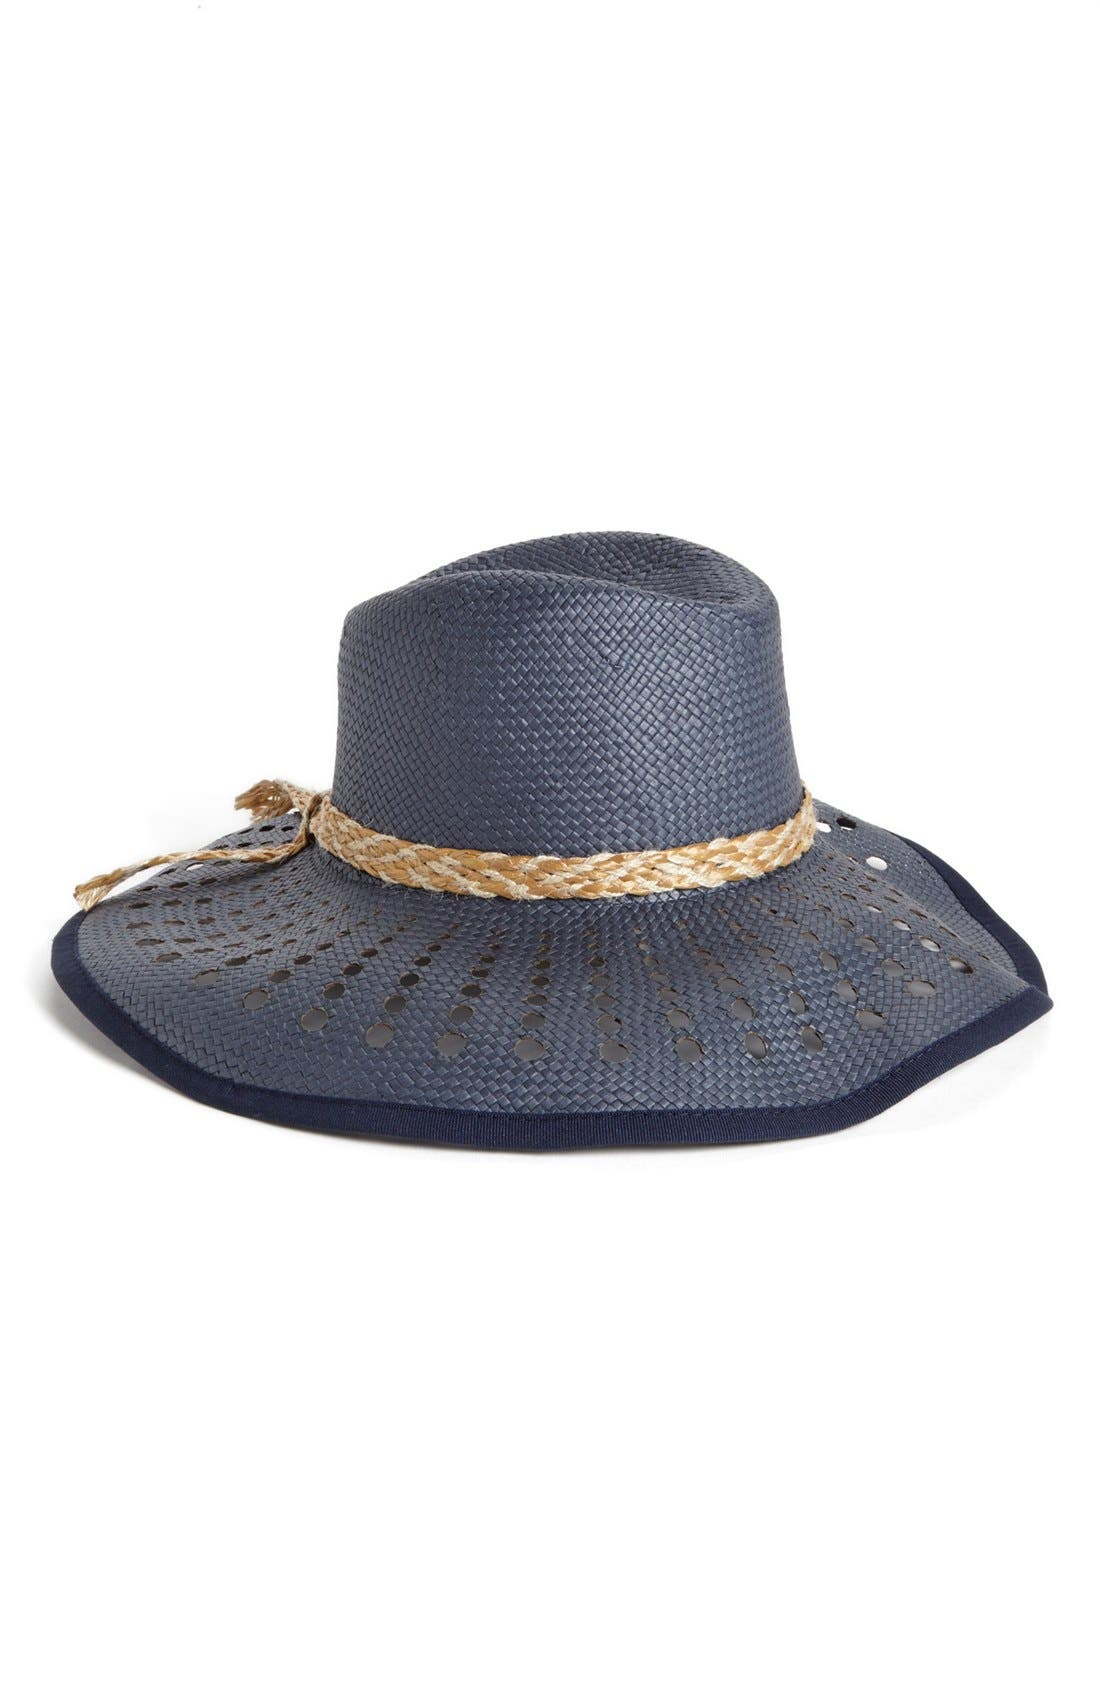 Main Image - Nordstrom 'Holey' Floppy Hat